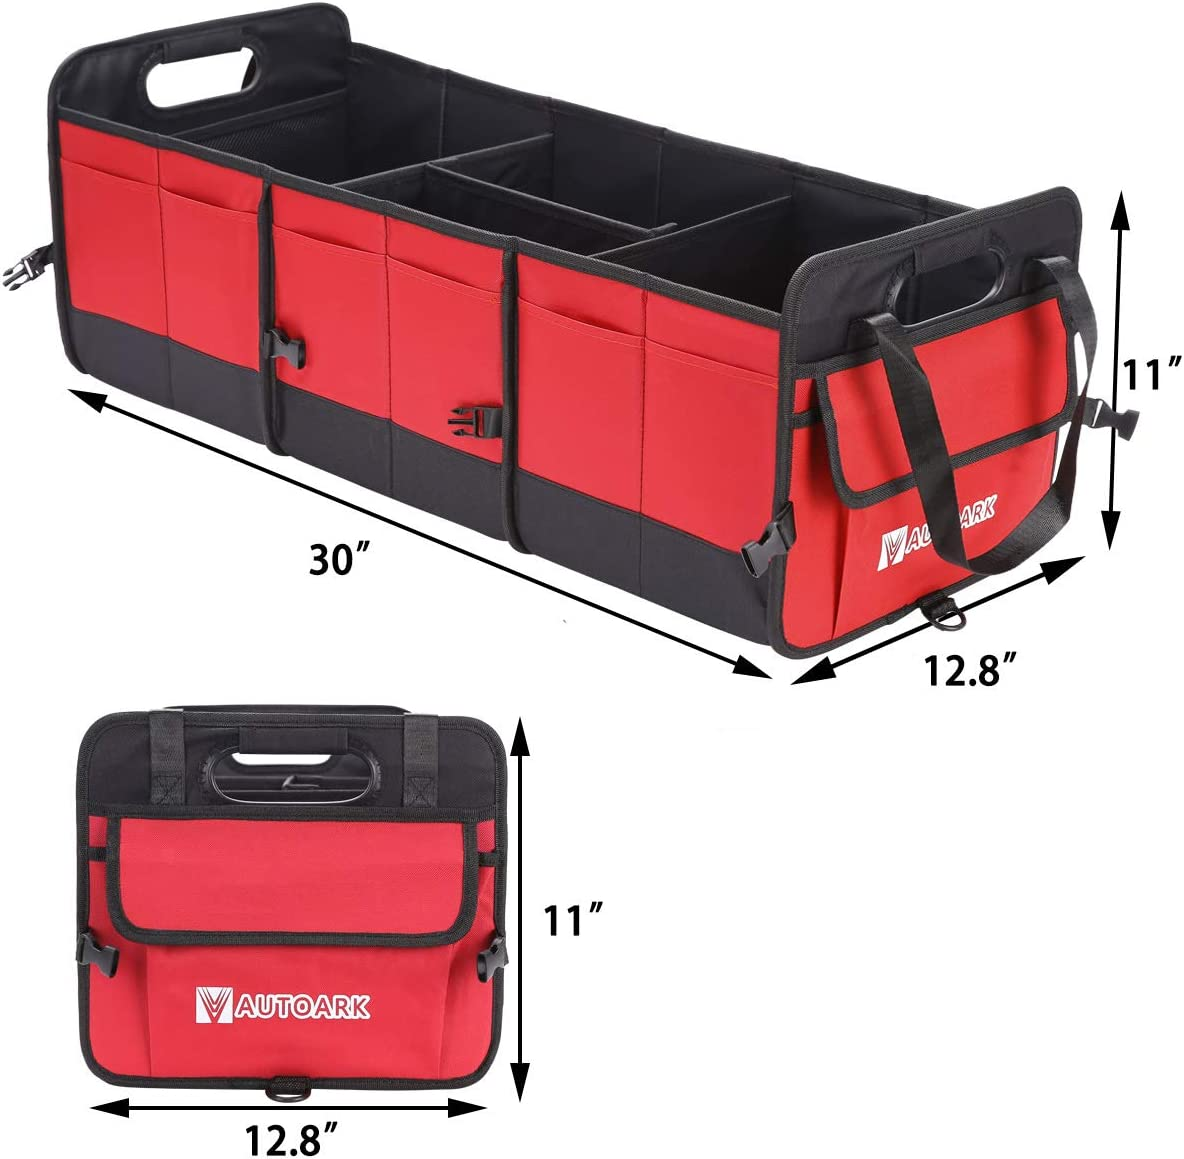 Autoark Multipurpose Car SUV Trunk Organizer with Removable Insulation Leakproof Cooler Bag,Durable Collapsible Adjustable Compartments Cargo Storage,AK-135